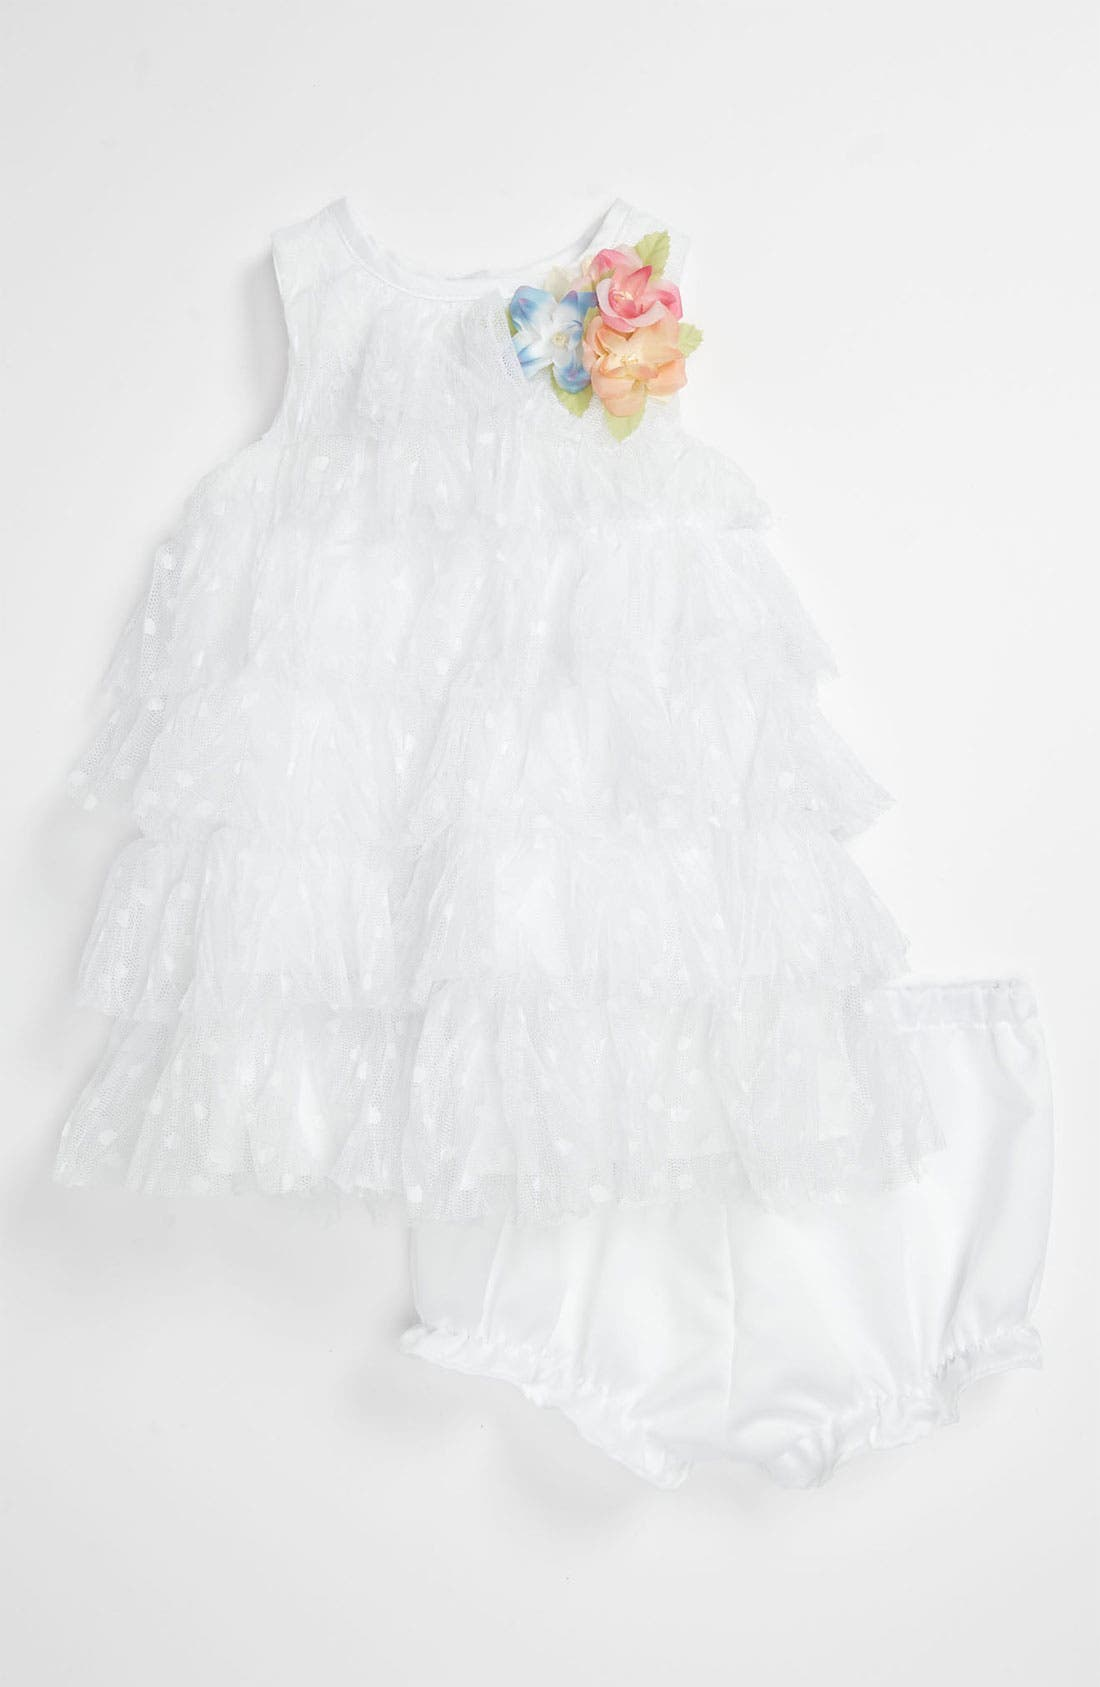 Alternate Image 1 Selected - Laura Ashley 'Point Esprit' Tier Dress (Baby Girls)